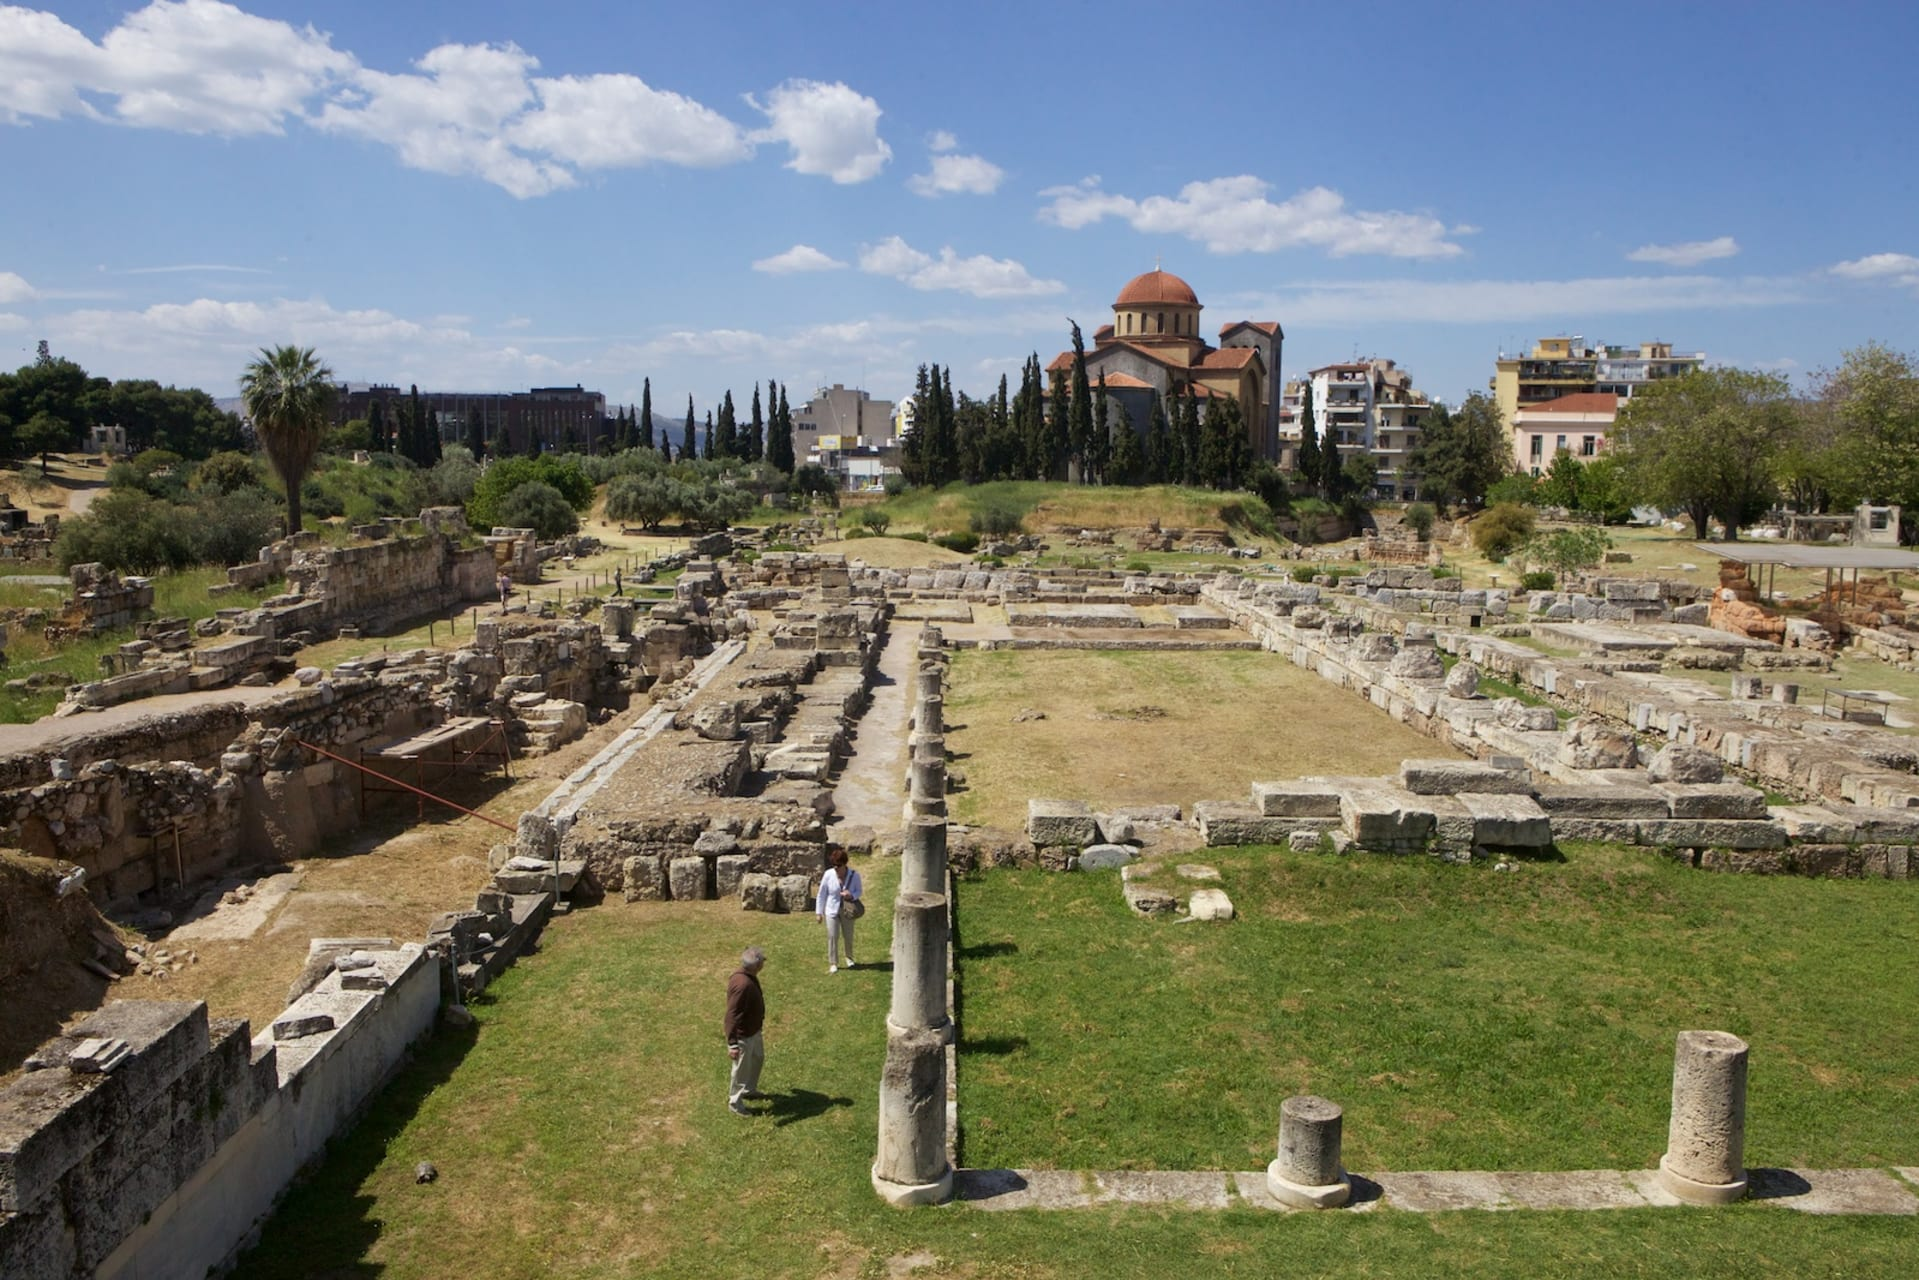 Athens - Classical Athens and its Golden Age – Democracy, an experiment in politics